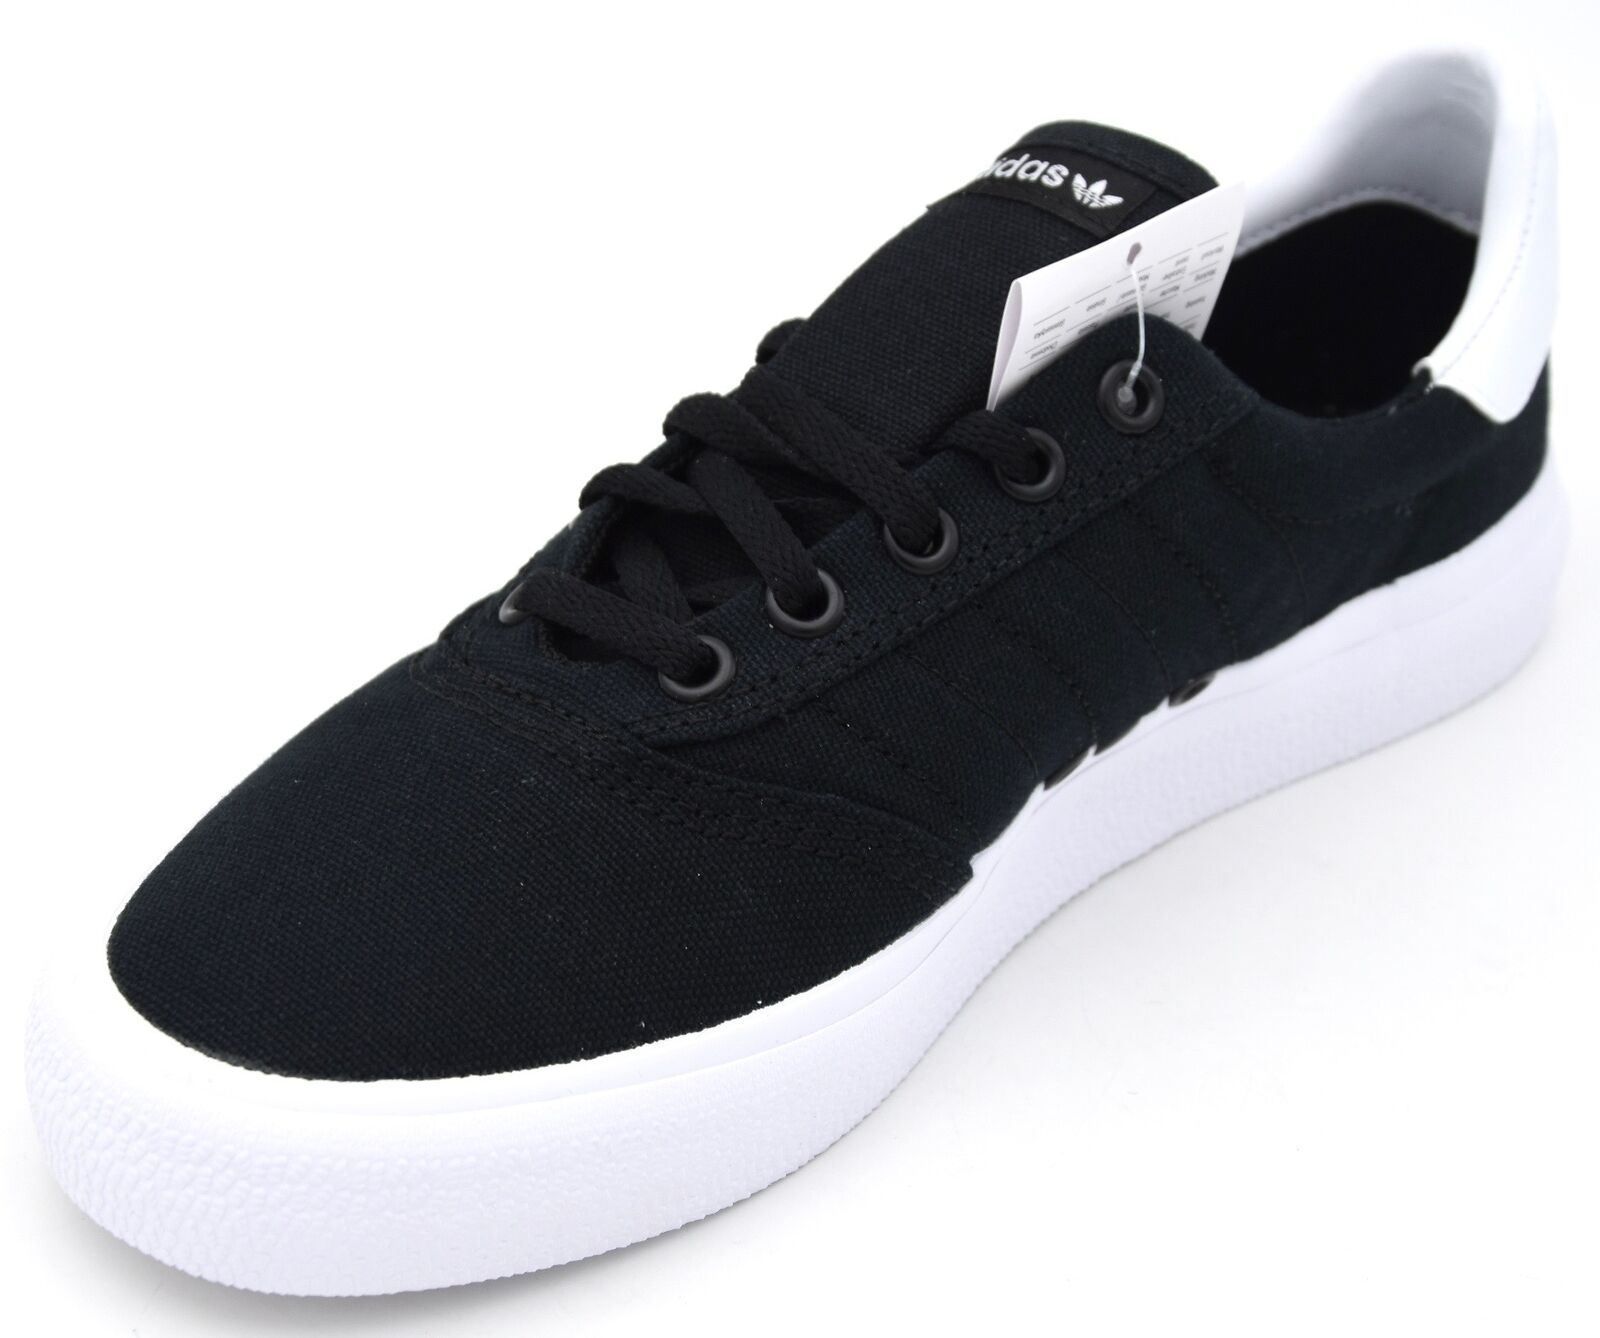 ADIDAS MAN WOMAN UNISEX SNEAKER SHOES CASUAL FREE TIME CANVAS CODE B22706 3MC